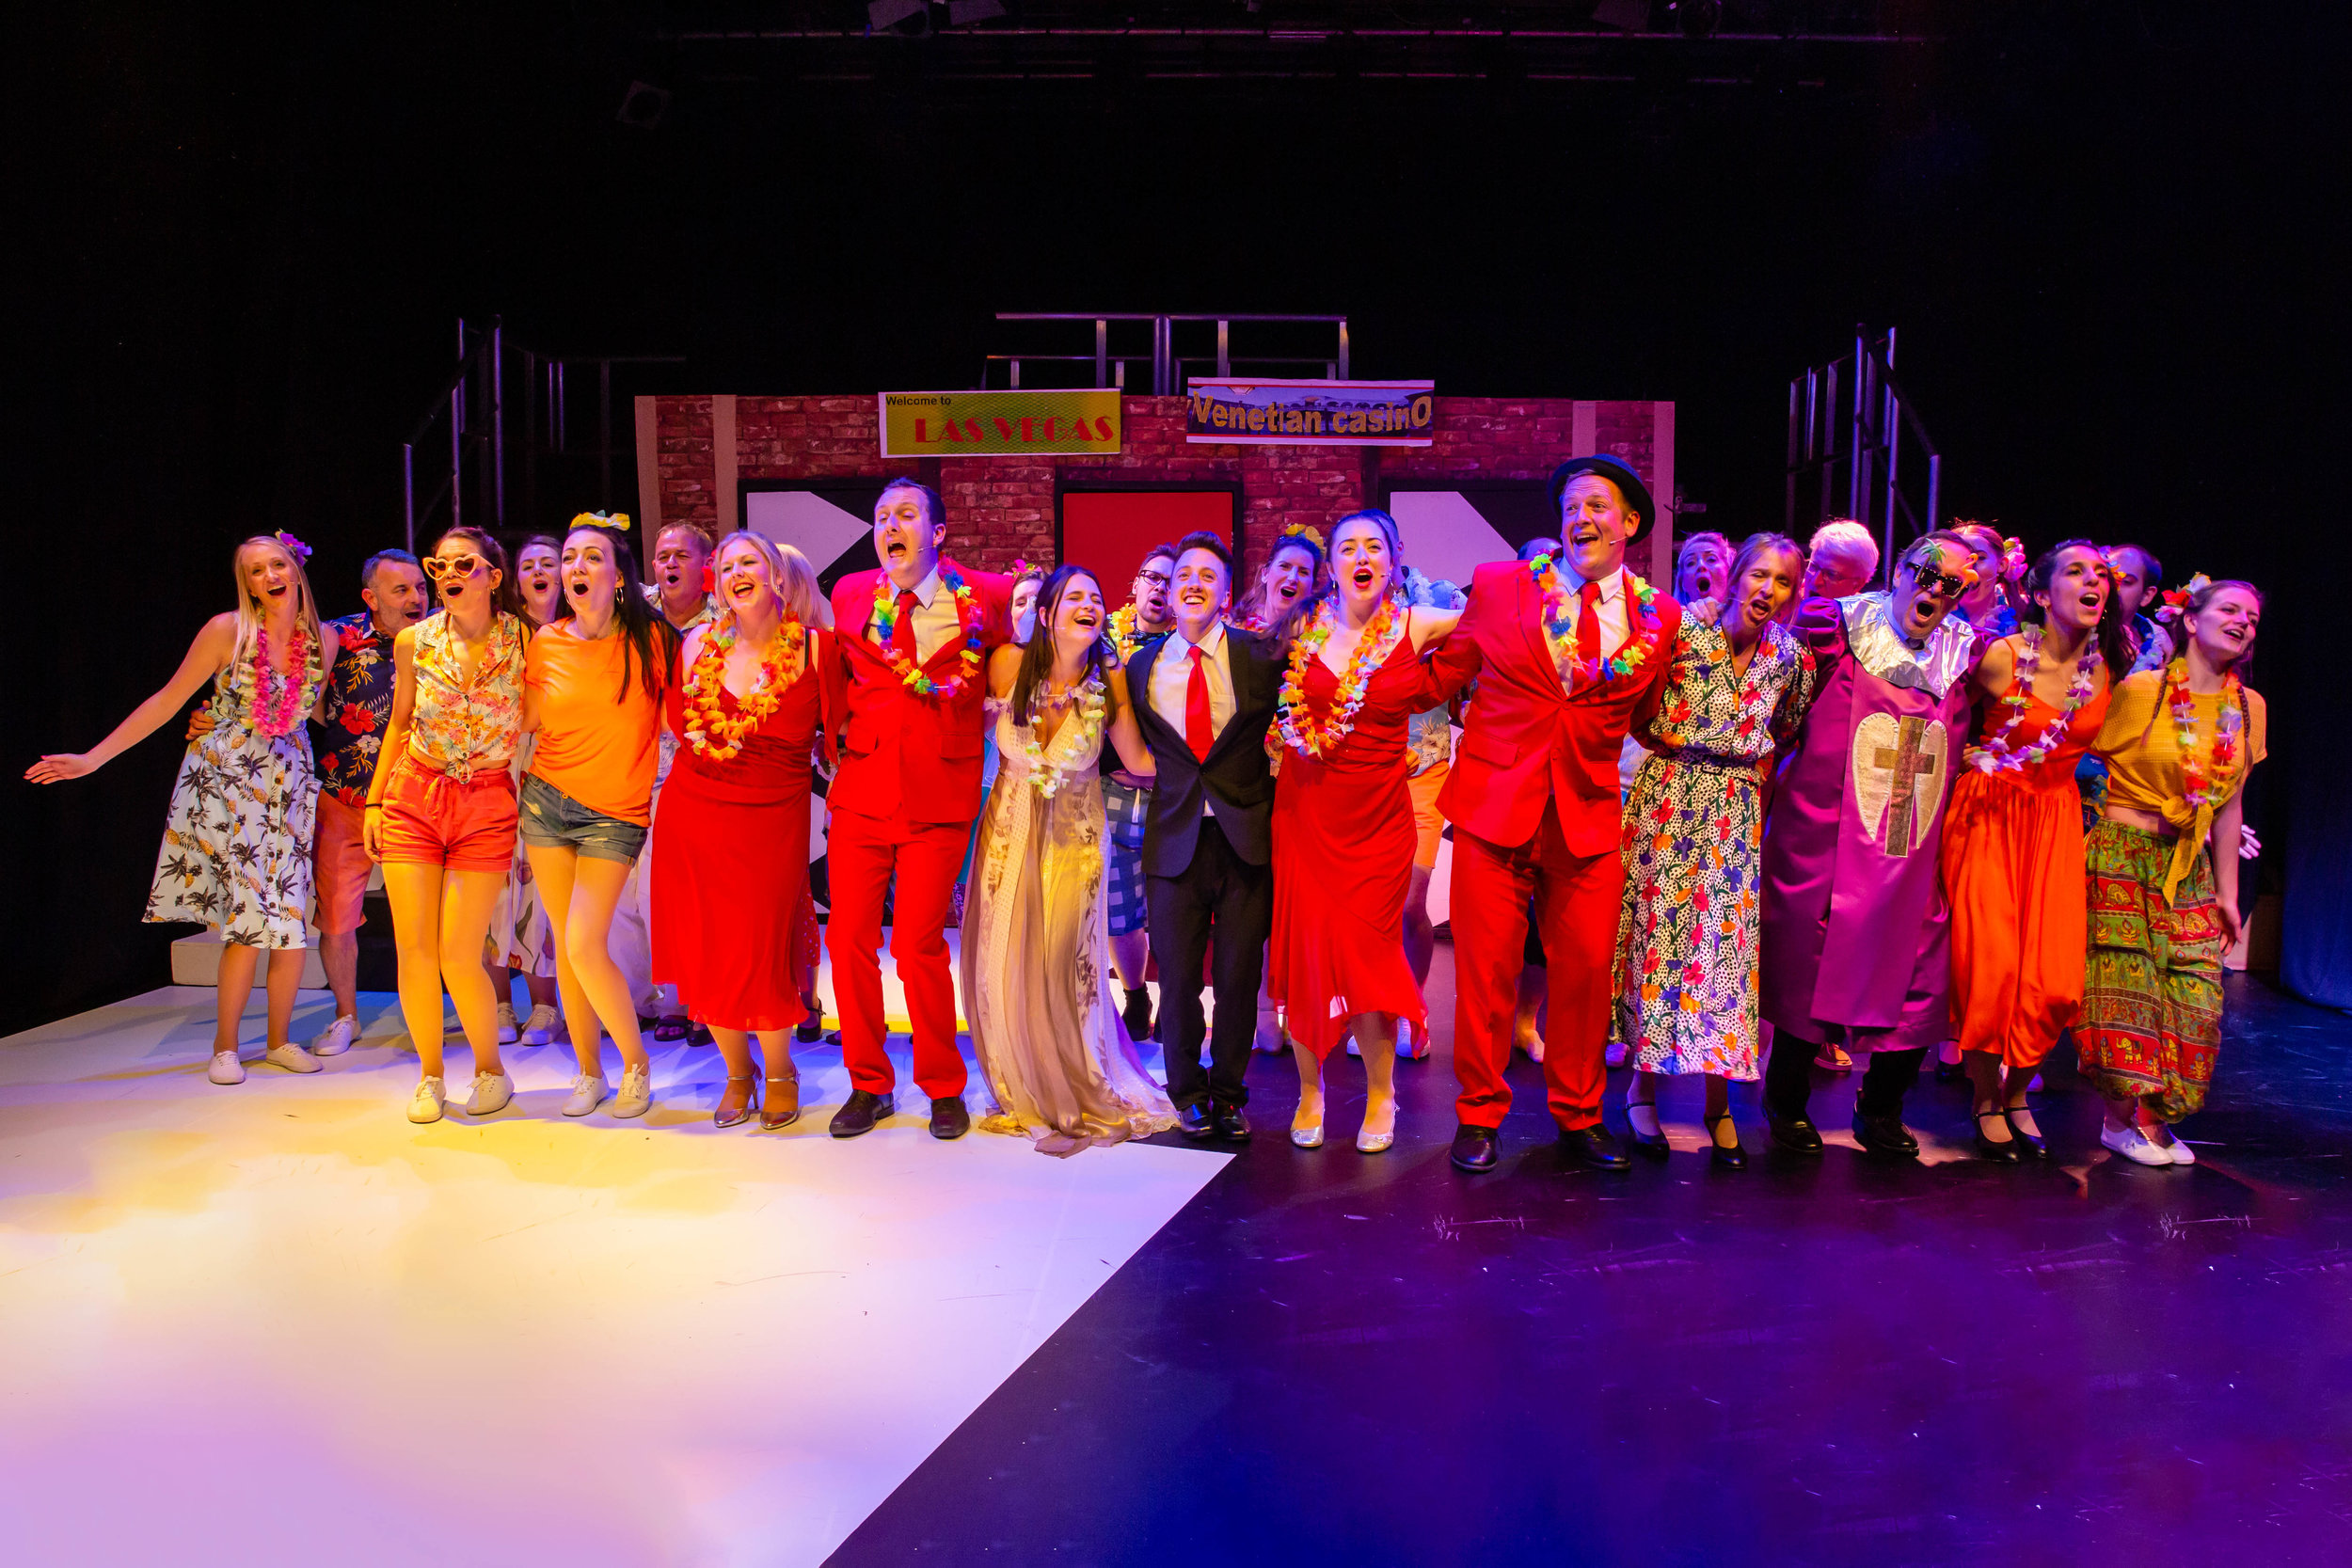 BRENTWOOD OPERATIC SOCIETY   staging award winning musical theatre productions for over 110 years